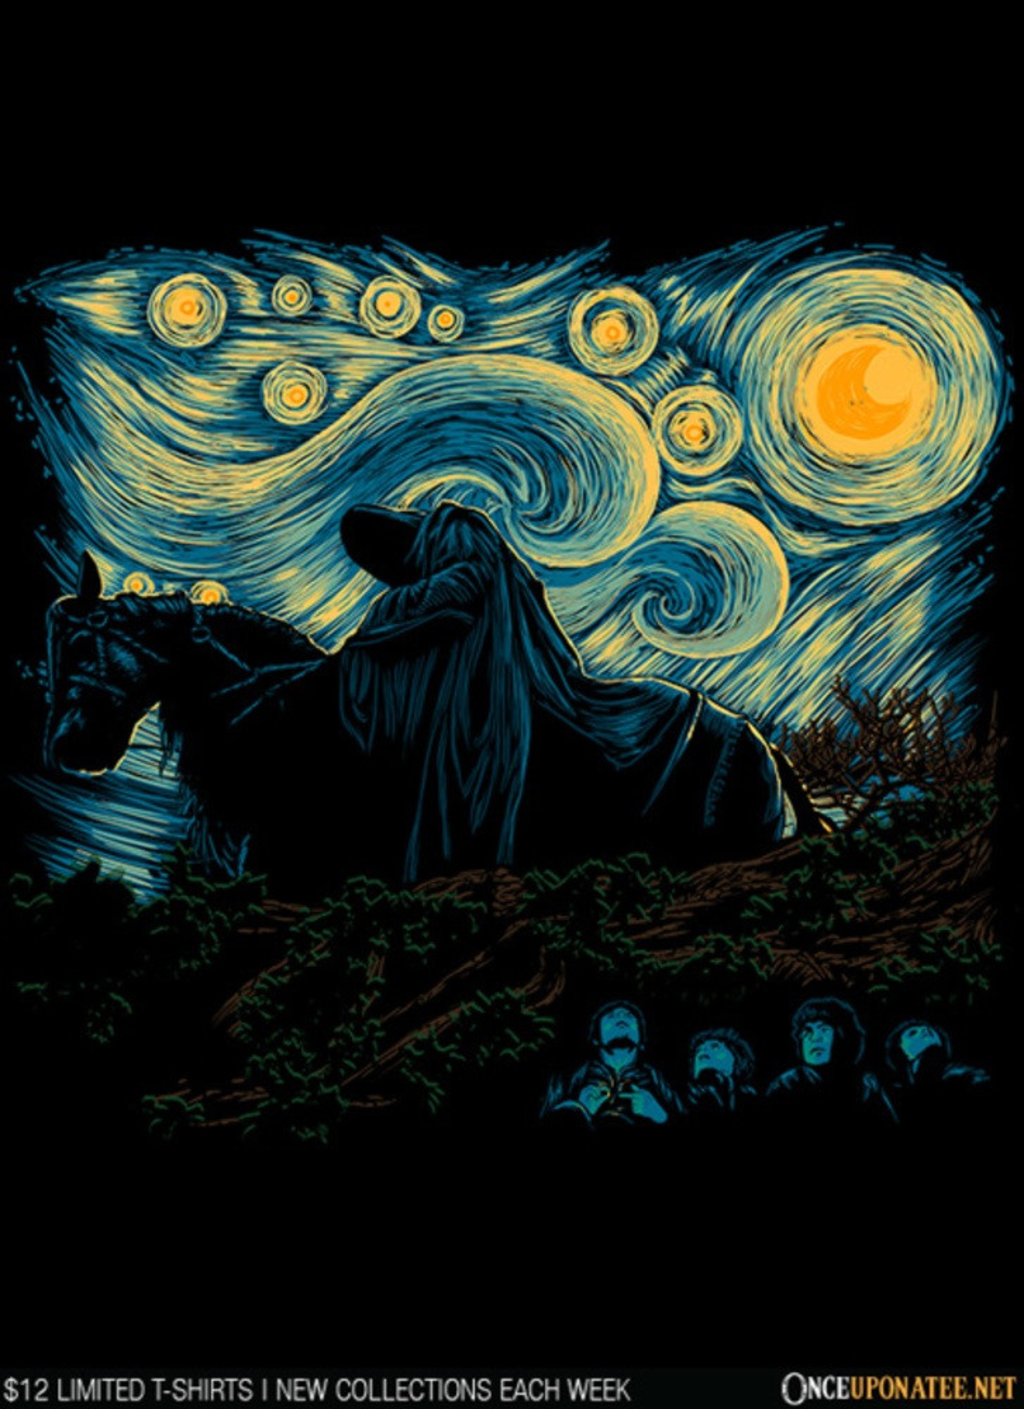 Once Upon a Tee: Nightfall in Middle Earth